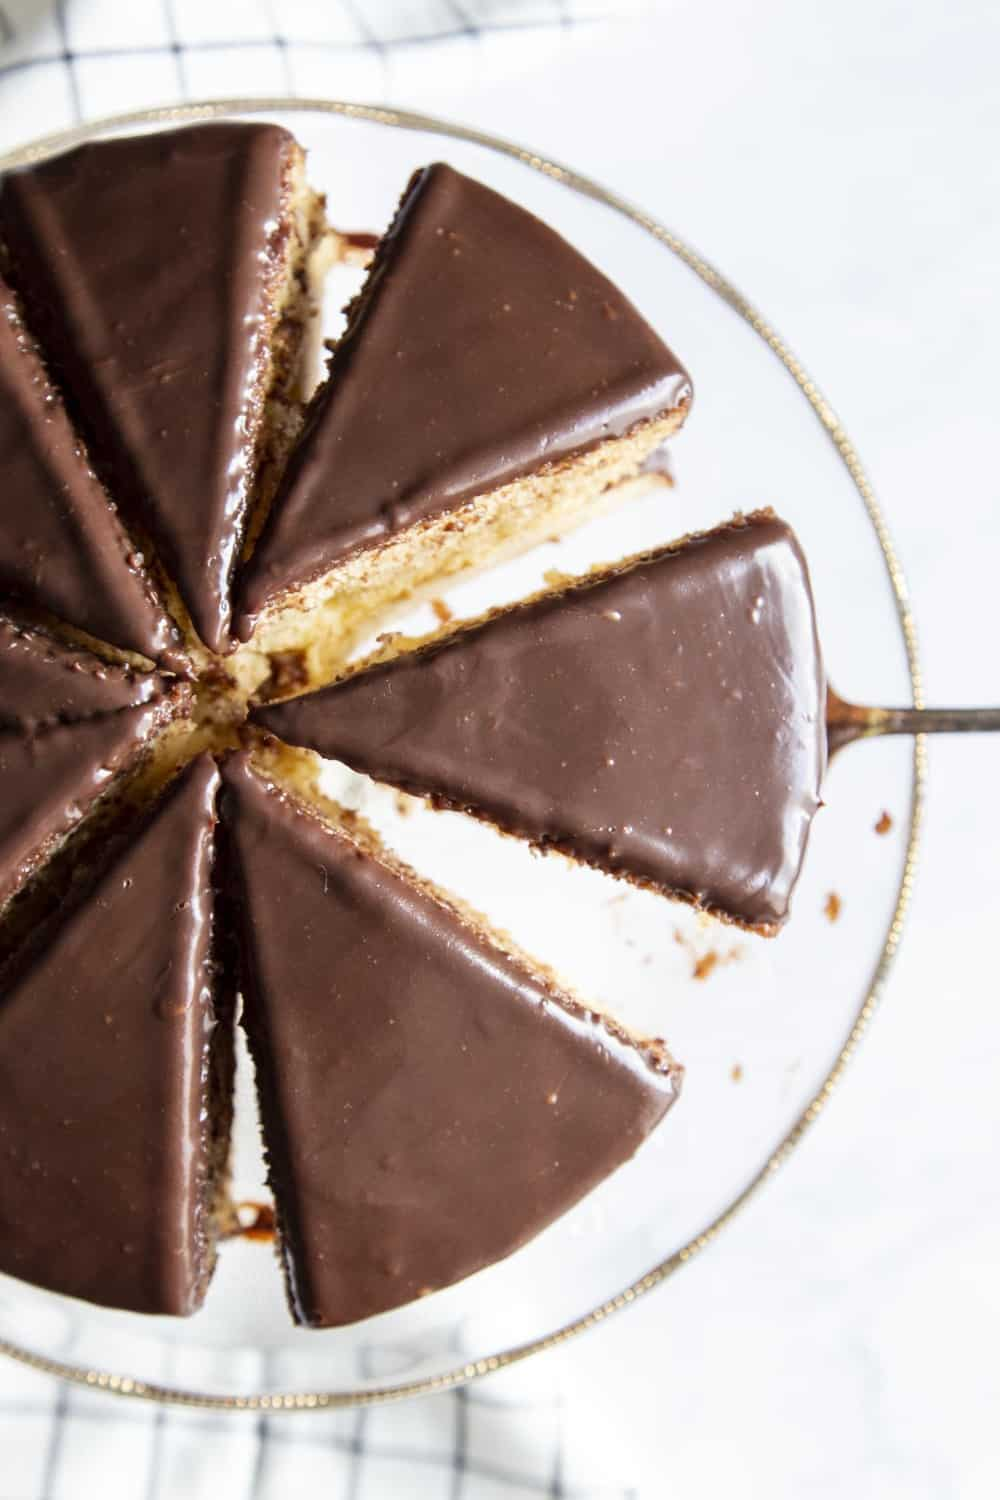 Boston Cream Cake cut into slices.